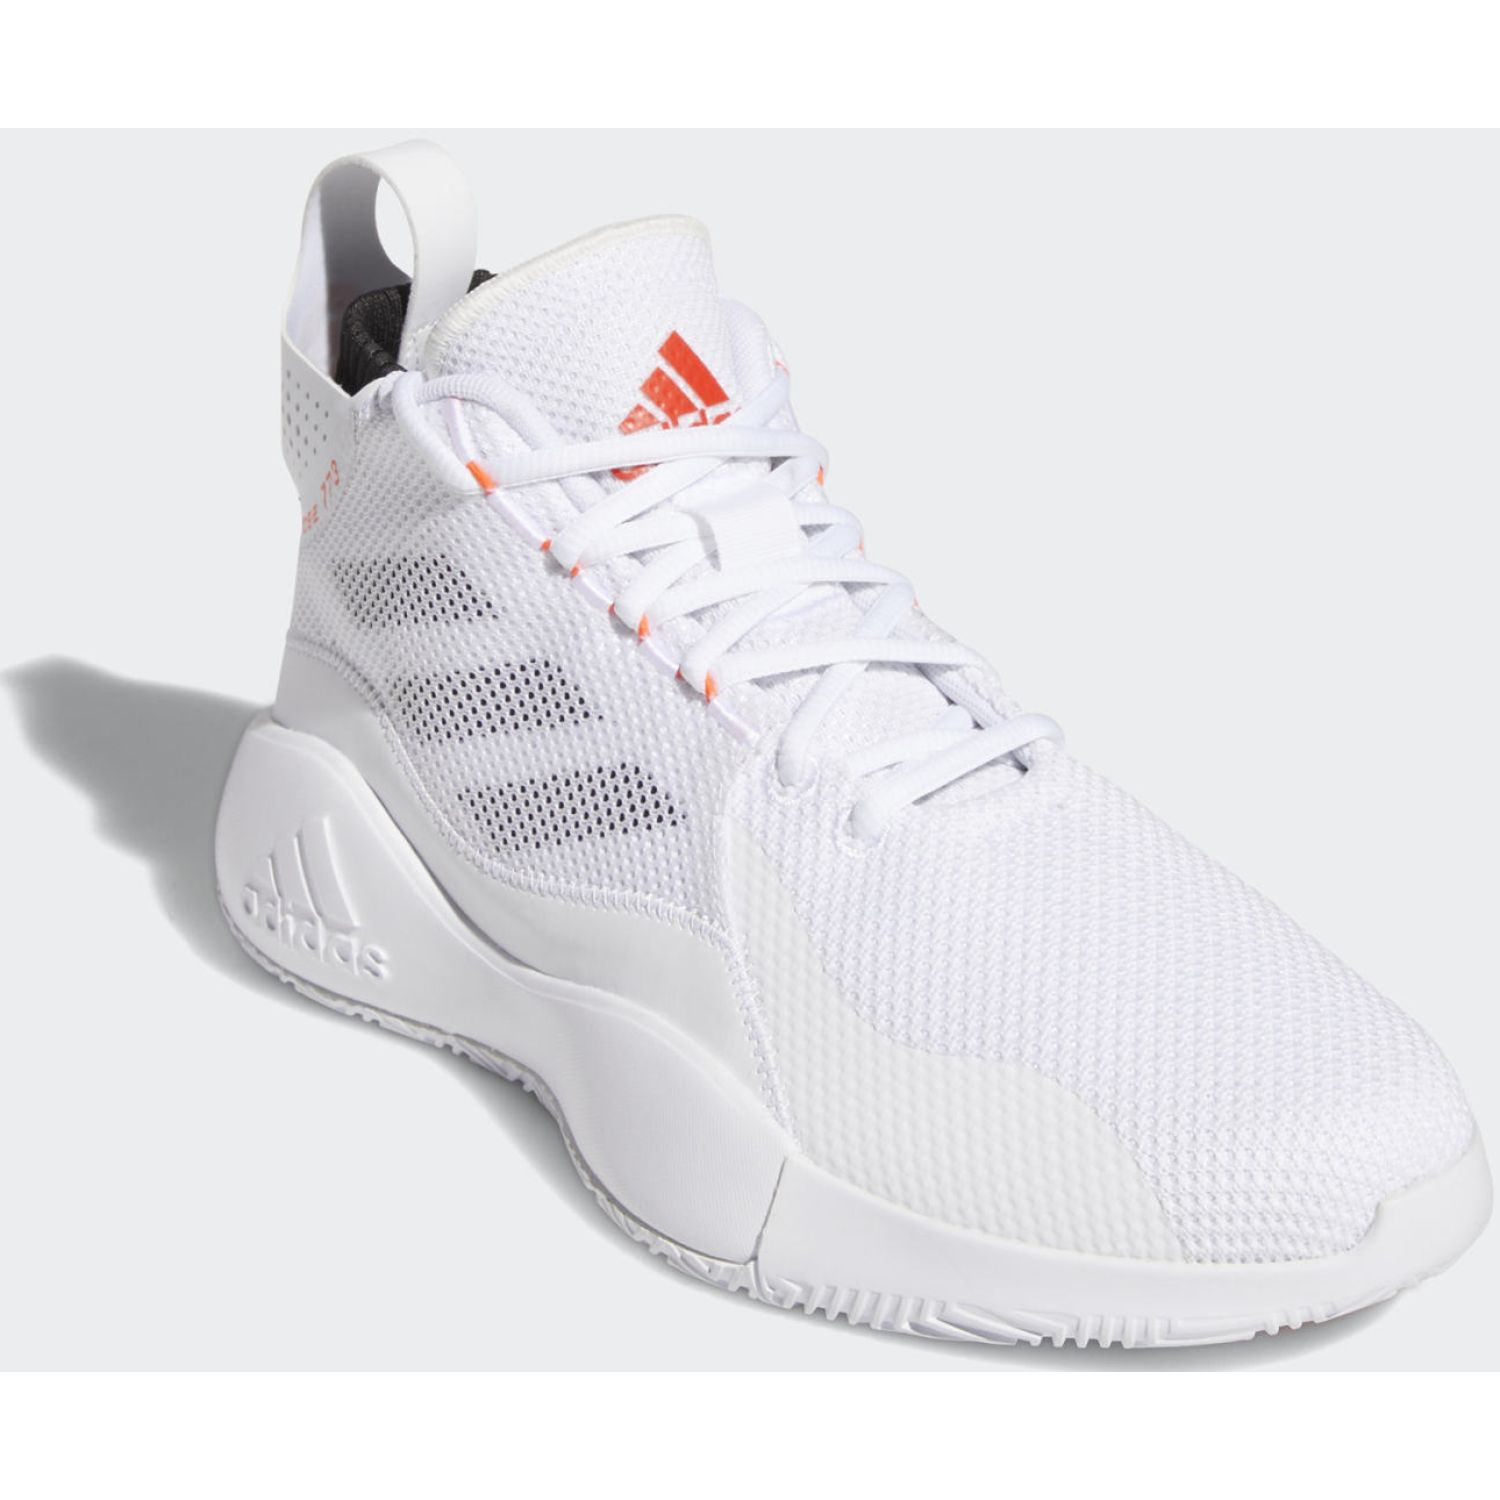 Adidas D Rose 773 2020 Blanco Hombres